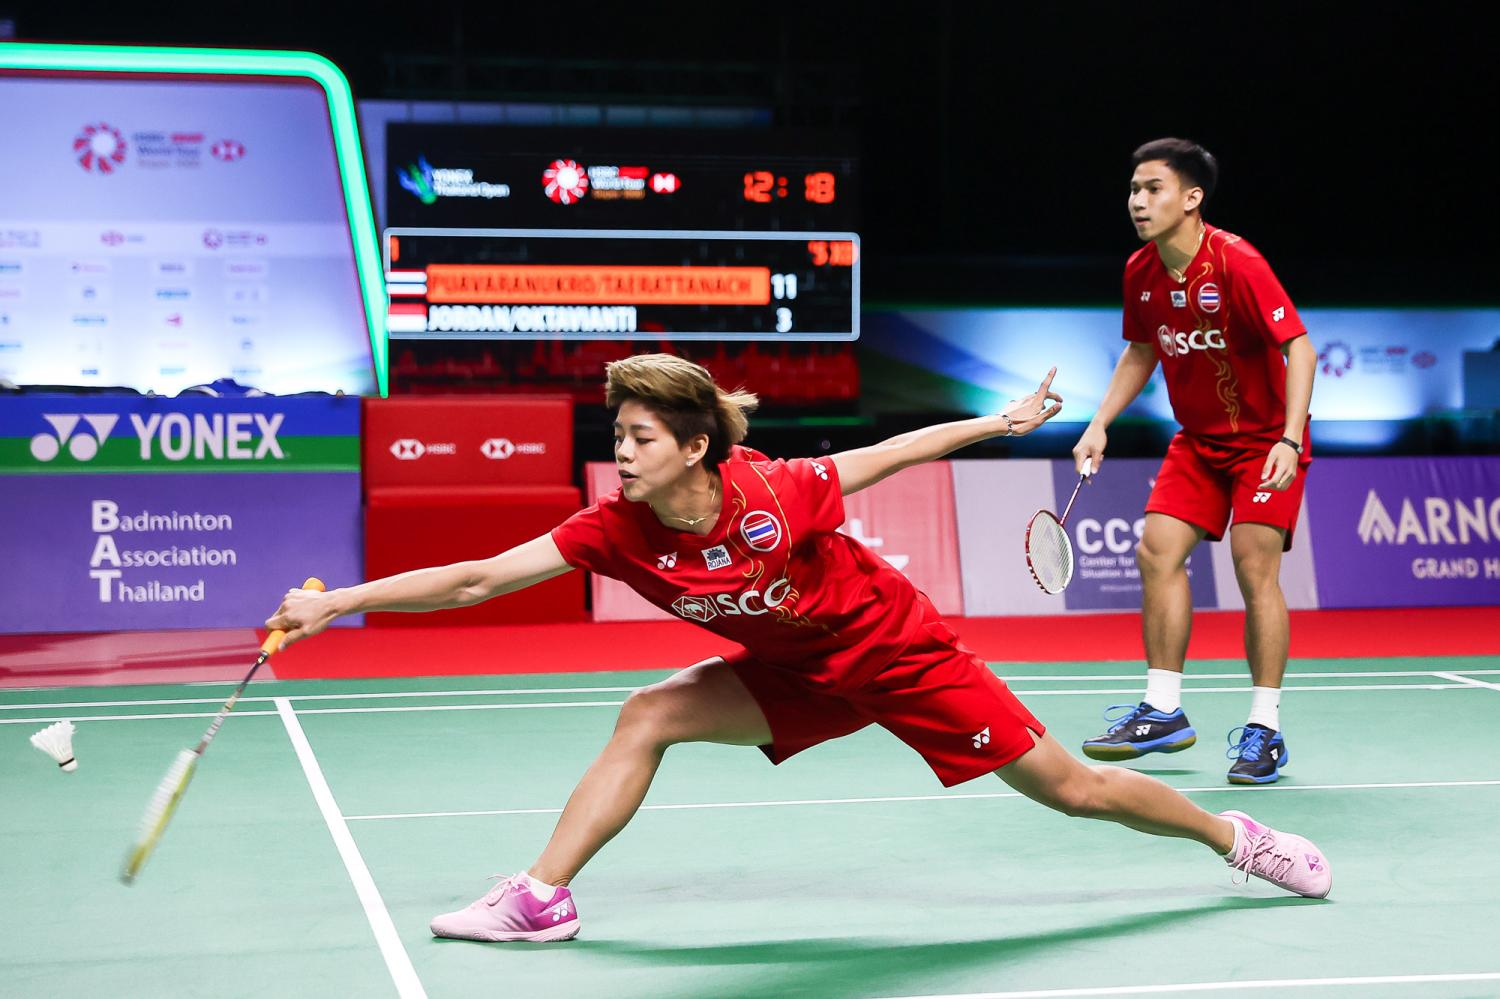 Tough openers for Thai singles stars